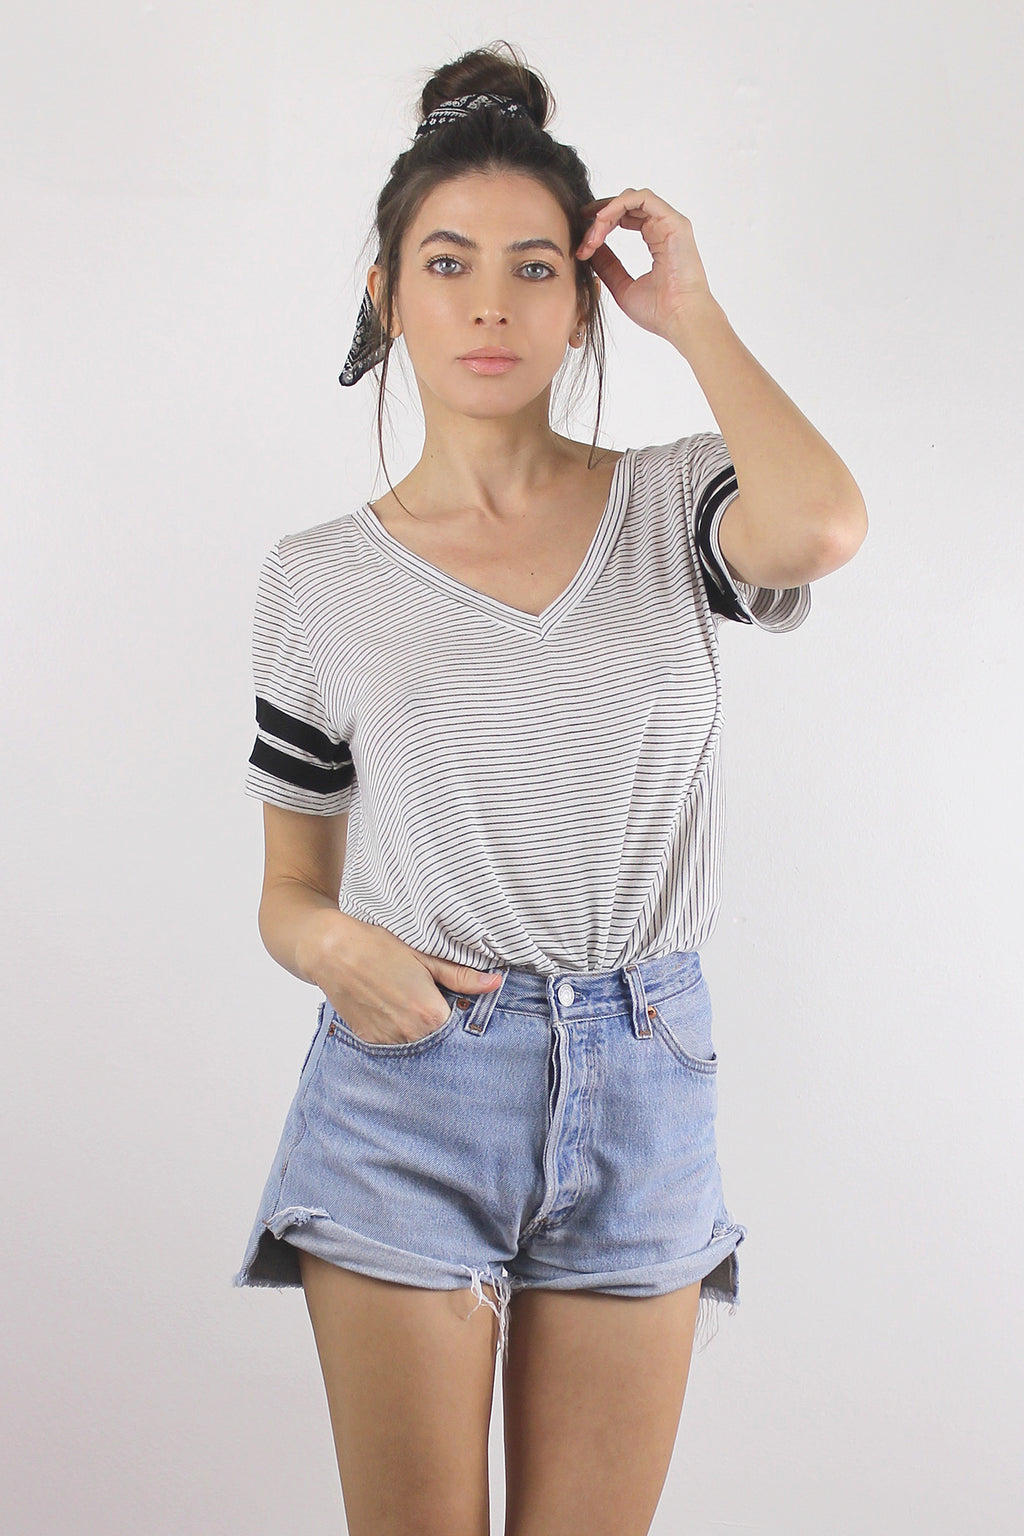 Black and white striped sporty tee shirt with knot front.